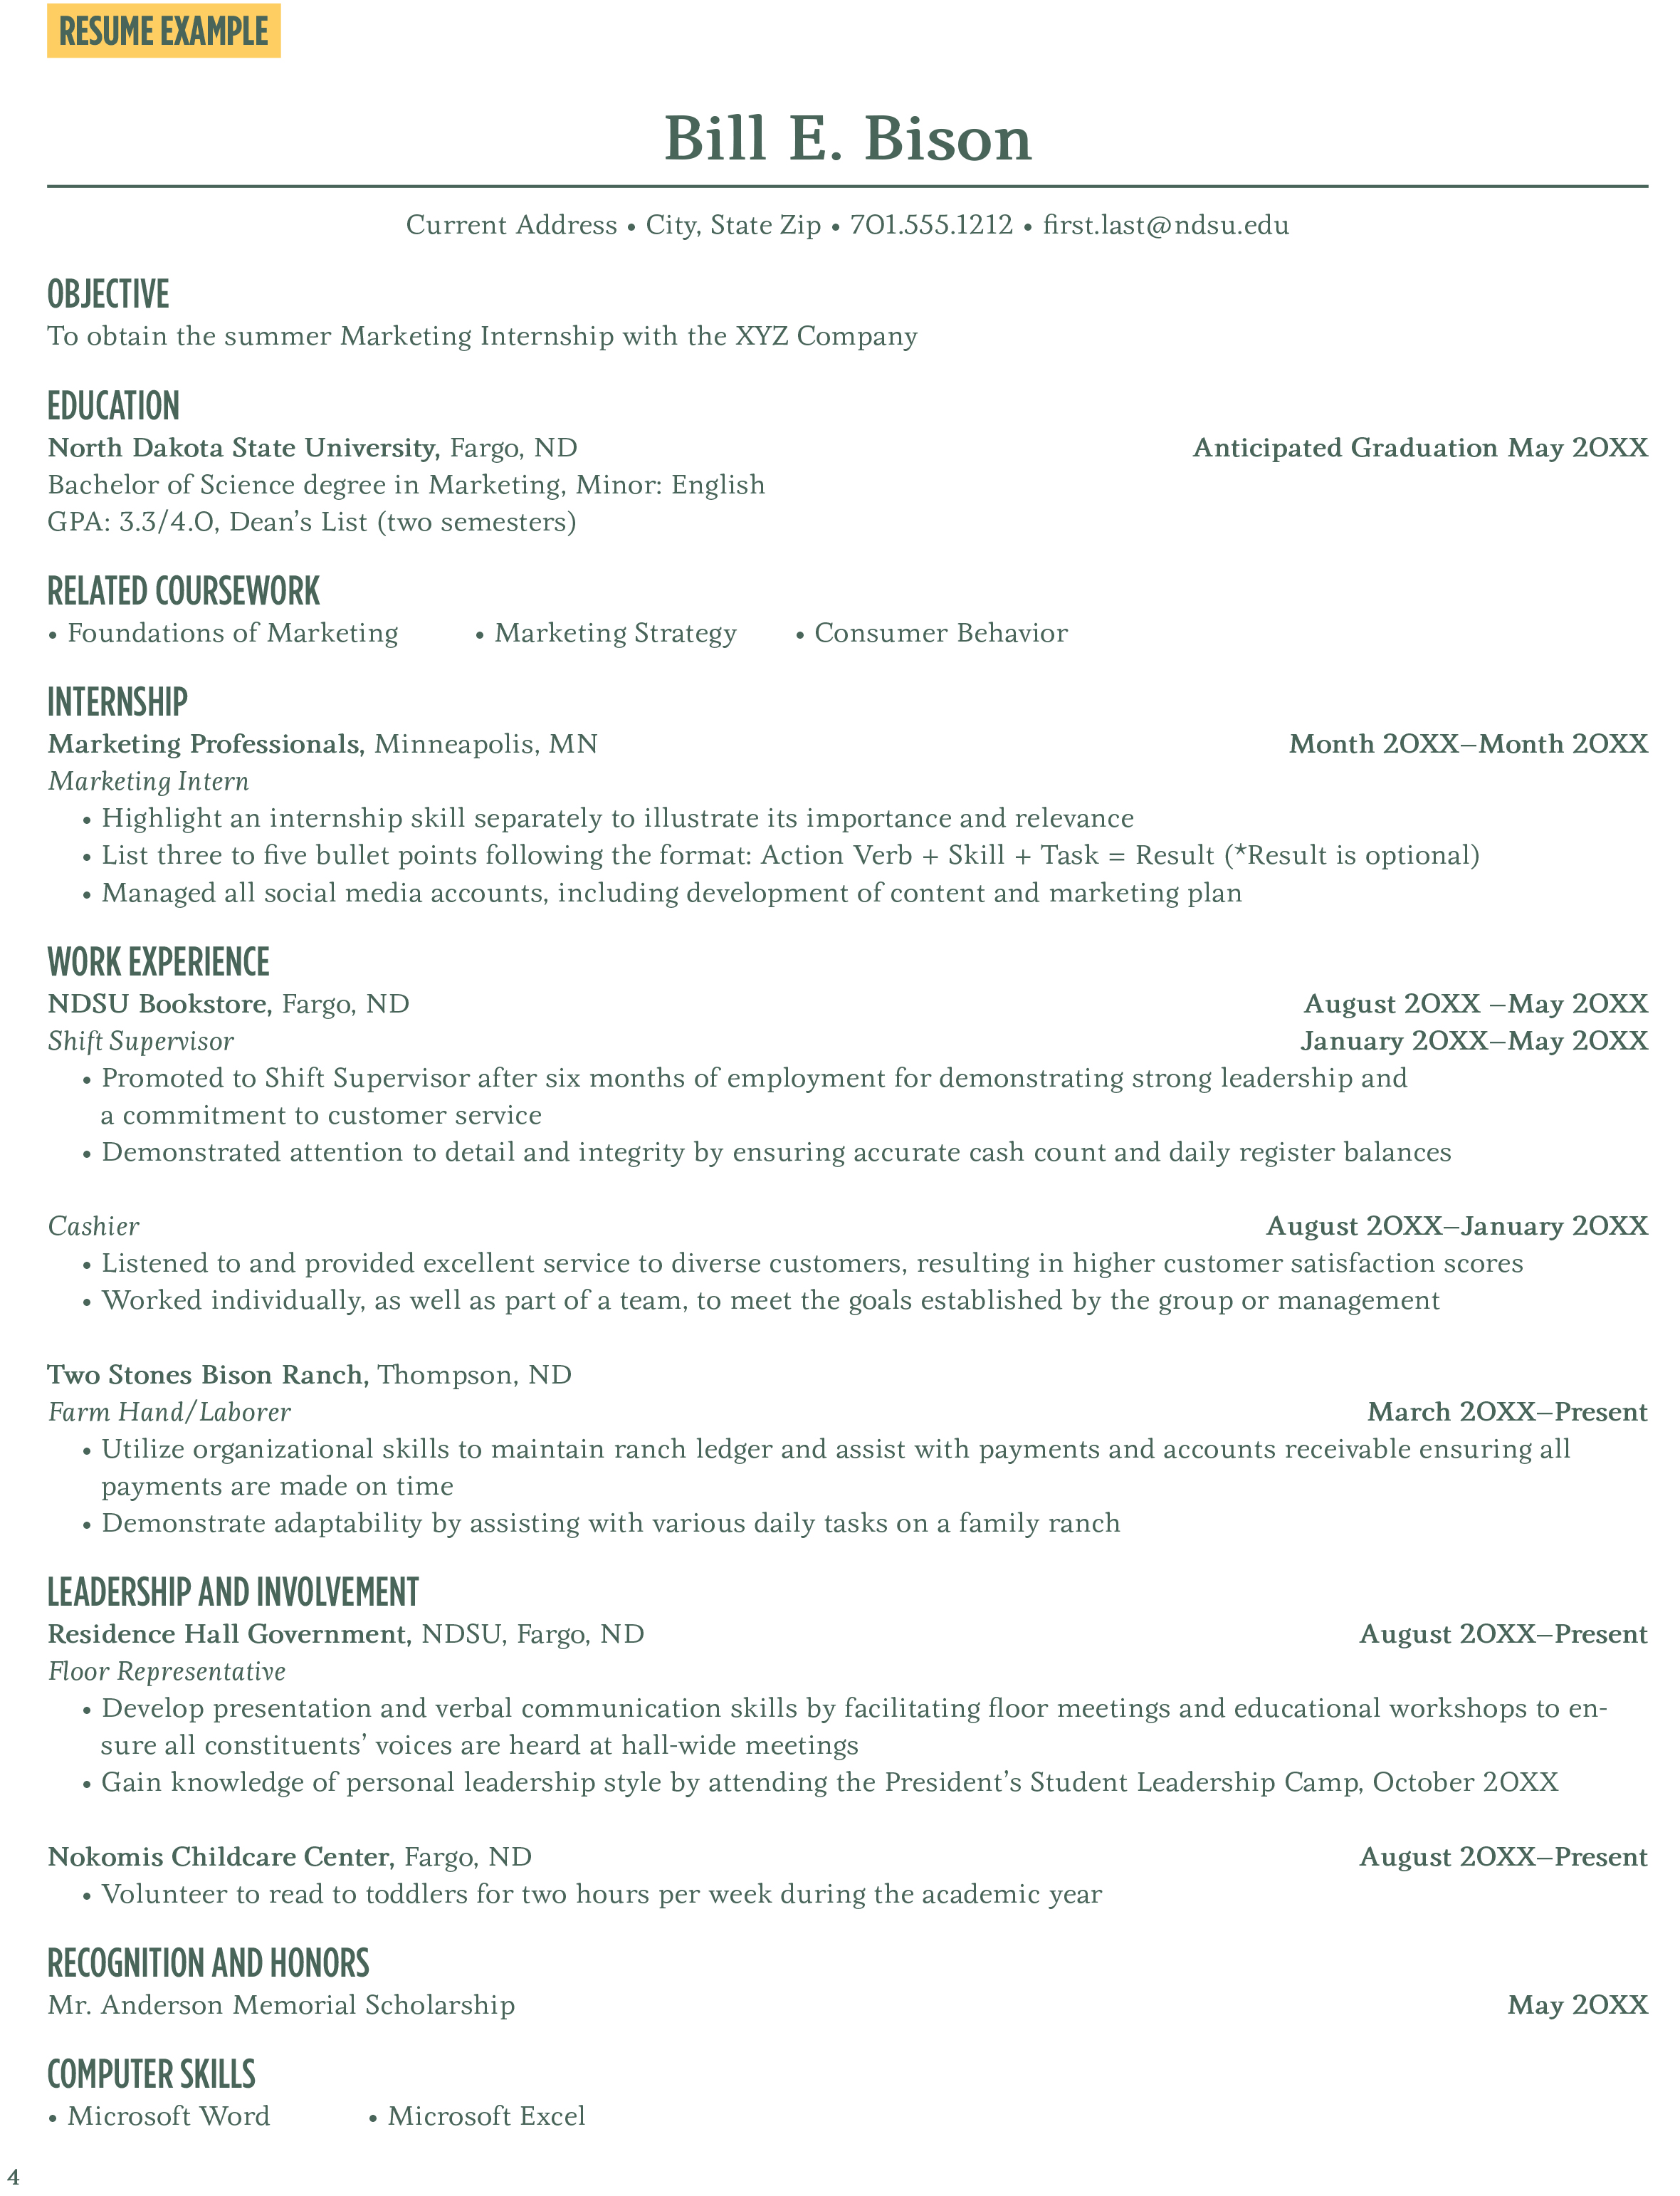 resume example career center north dakota state university - Science Resume Bullet Points